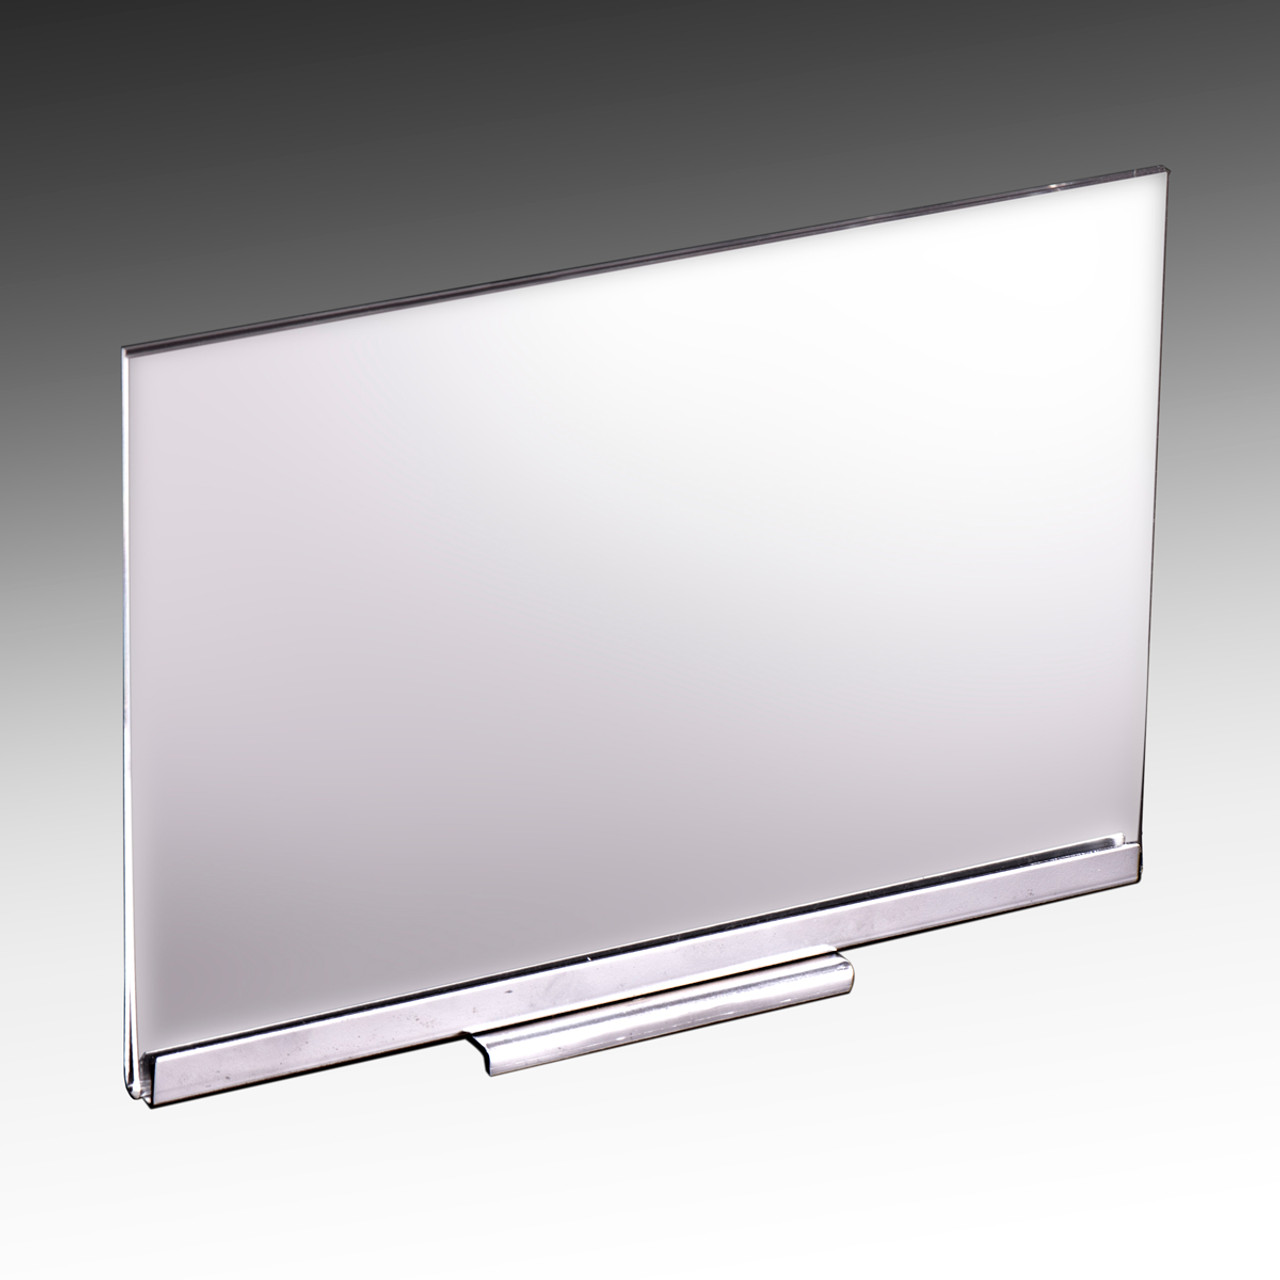 Acrylic sign holder with magnetic base - Displays 11 x 7 sign